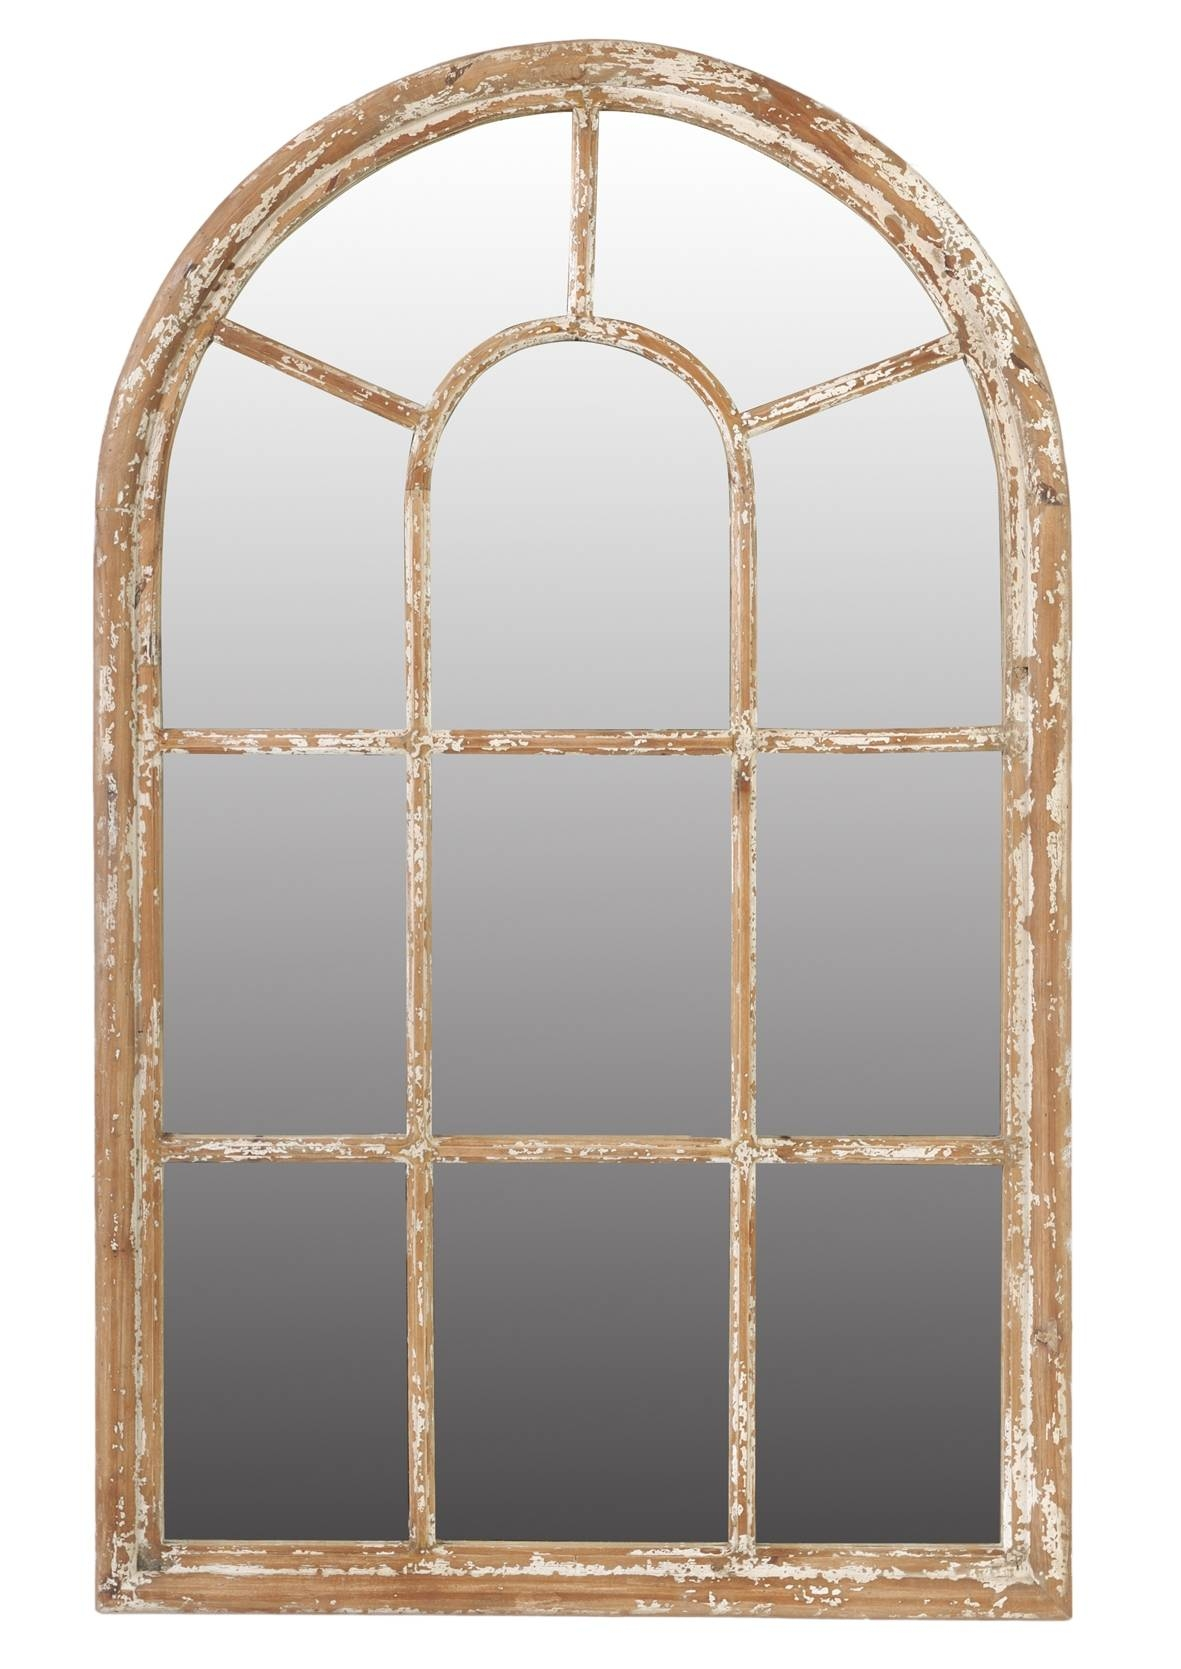 Arched Mirror With Shutters 27 Cute Interior And Cool Arched pertaining to Arched Window Mirrors (Image 3 of 25)